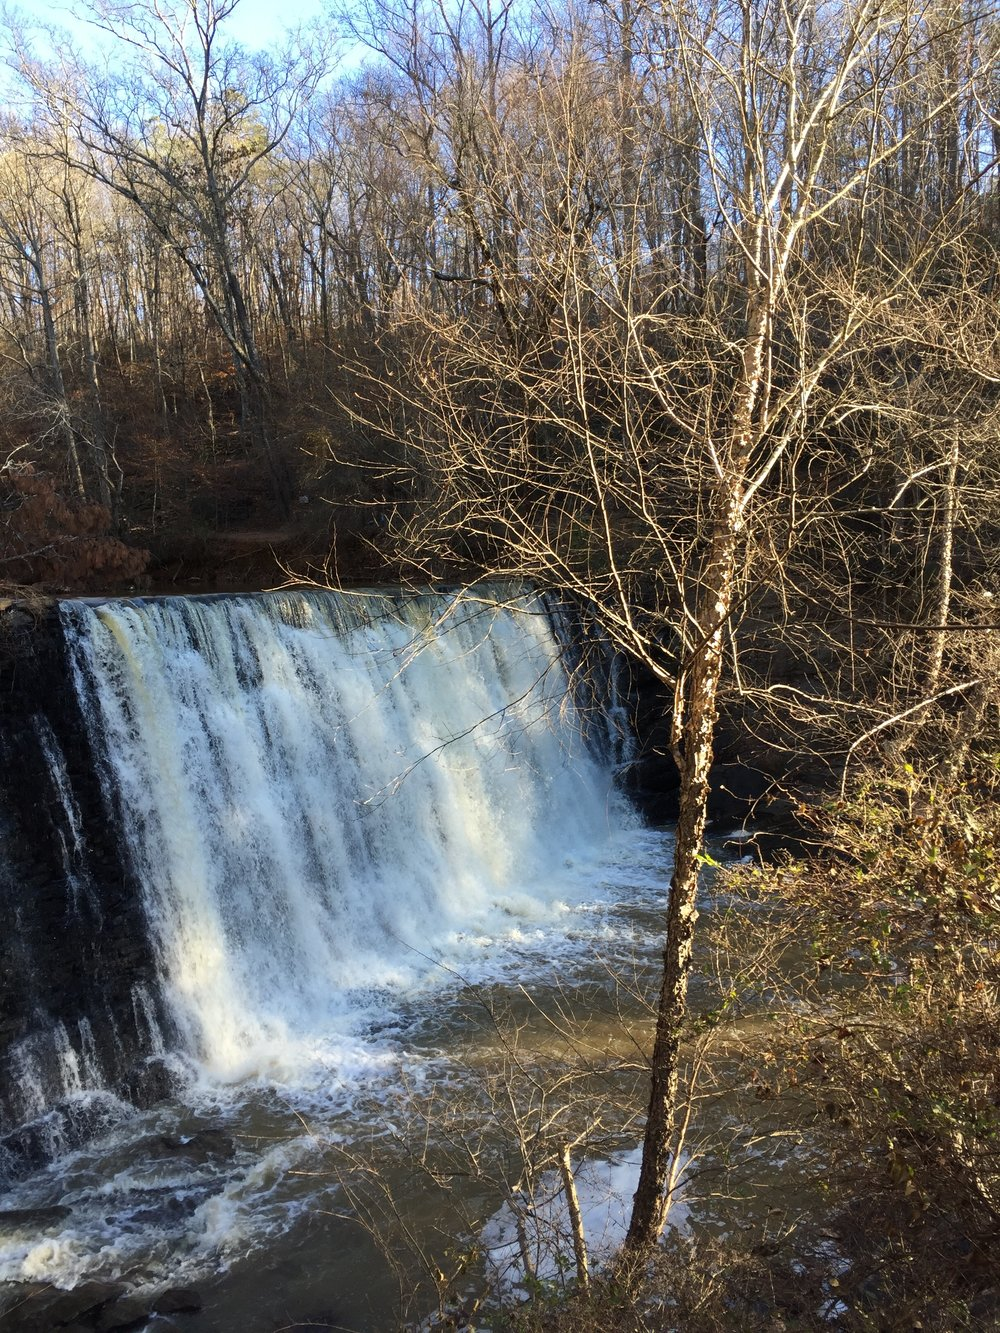 A waterfall that's only five miles from our house. My daughter and I made time to see it last week.